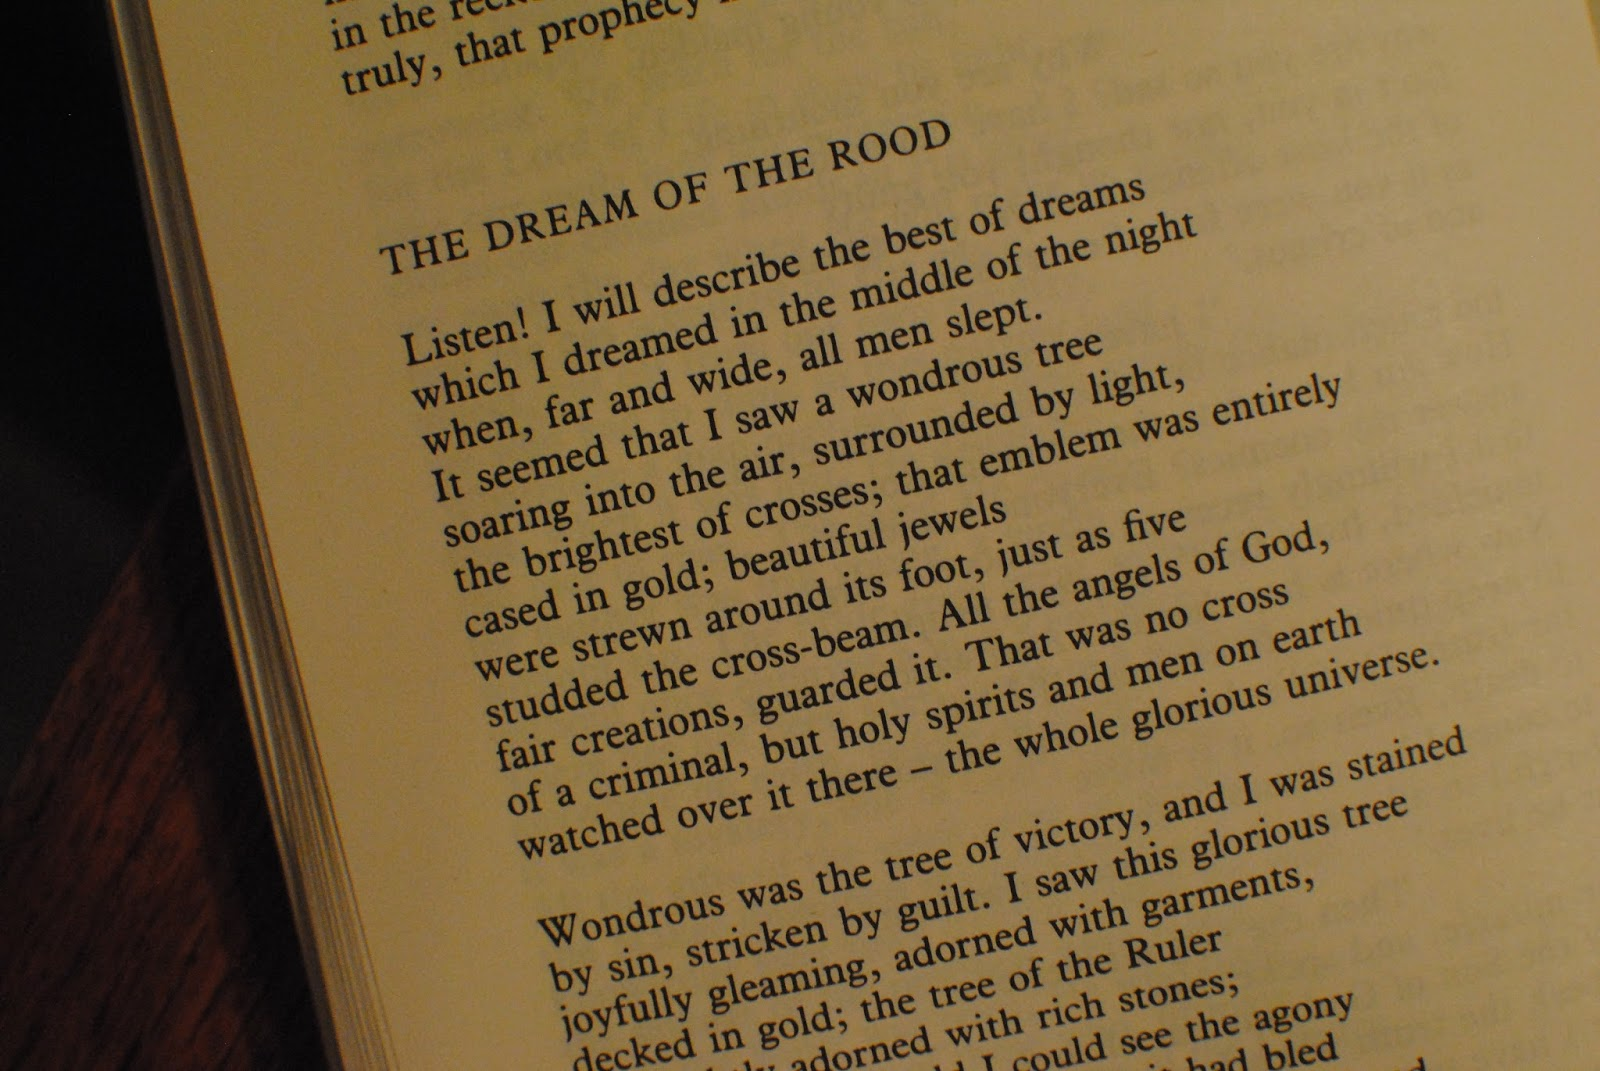 dream of the rood essay 146a 29 august 2012 response to the dream of the rood in the poem the dream of the rood, many parallels between a seemingly inanimate object directly correlates with the crucifixion and resurrection of christ.